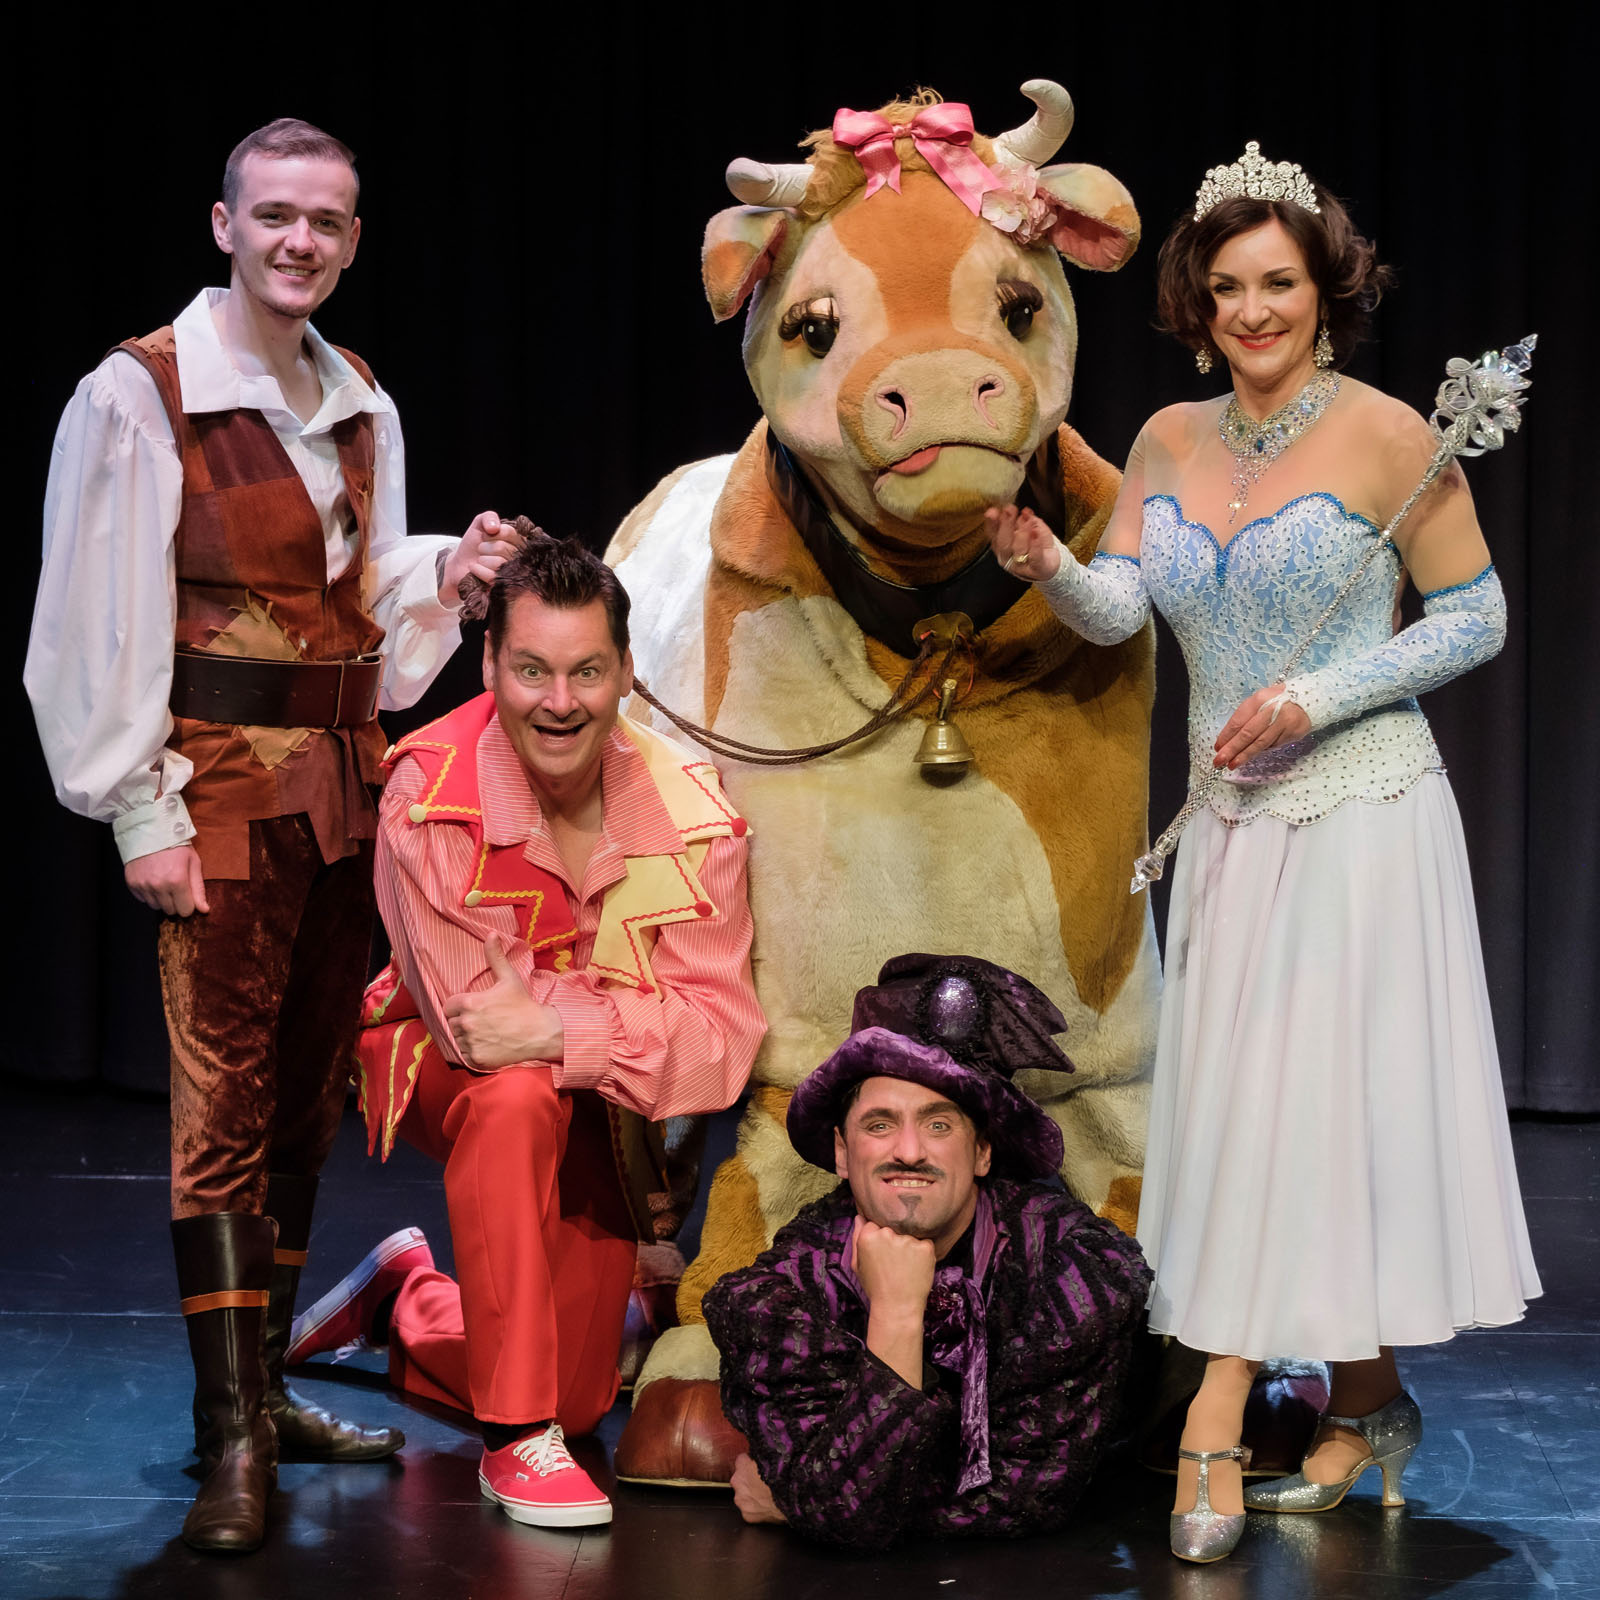 FREE FI FO FUM! Here's how to win free tickets to this year's Darlington panto